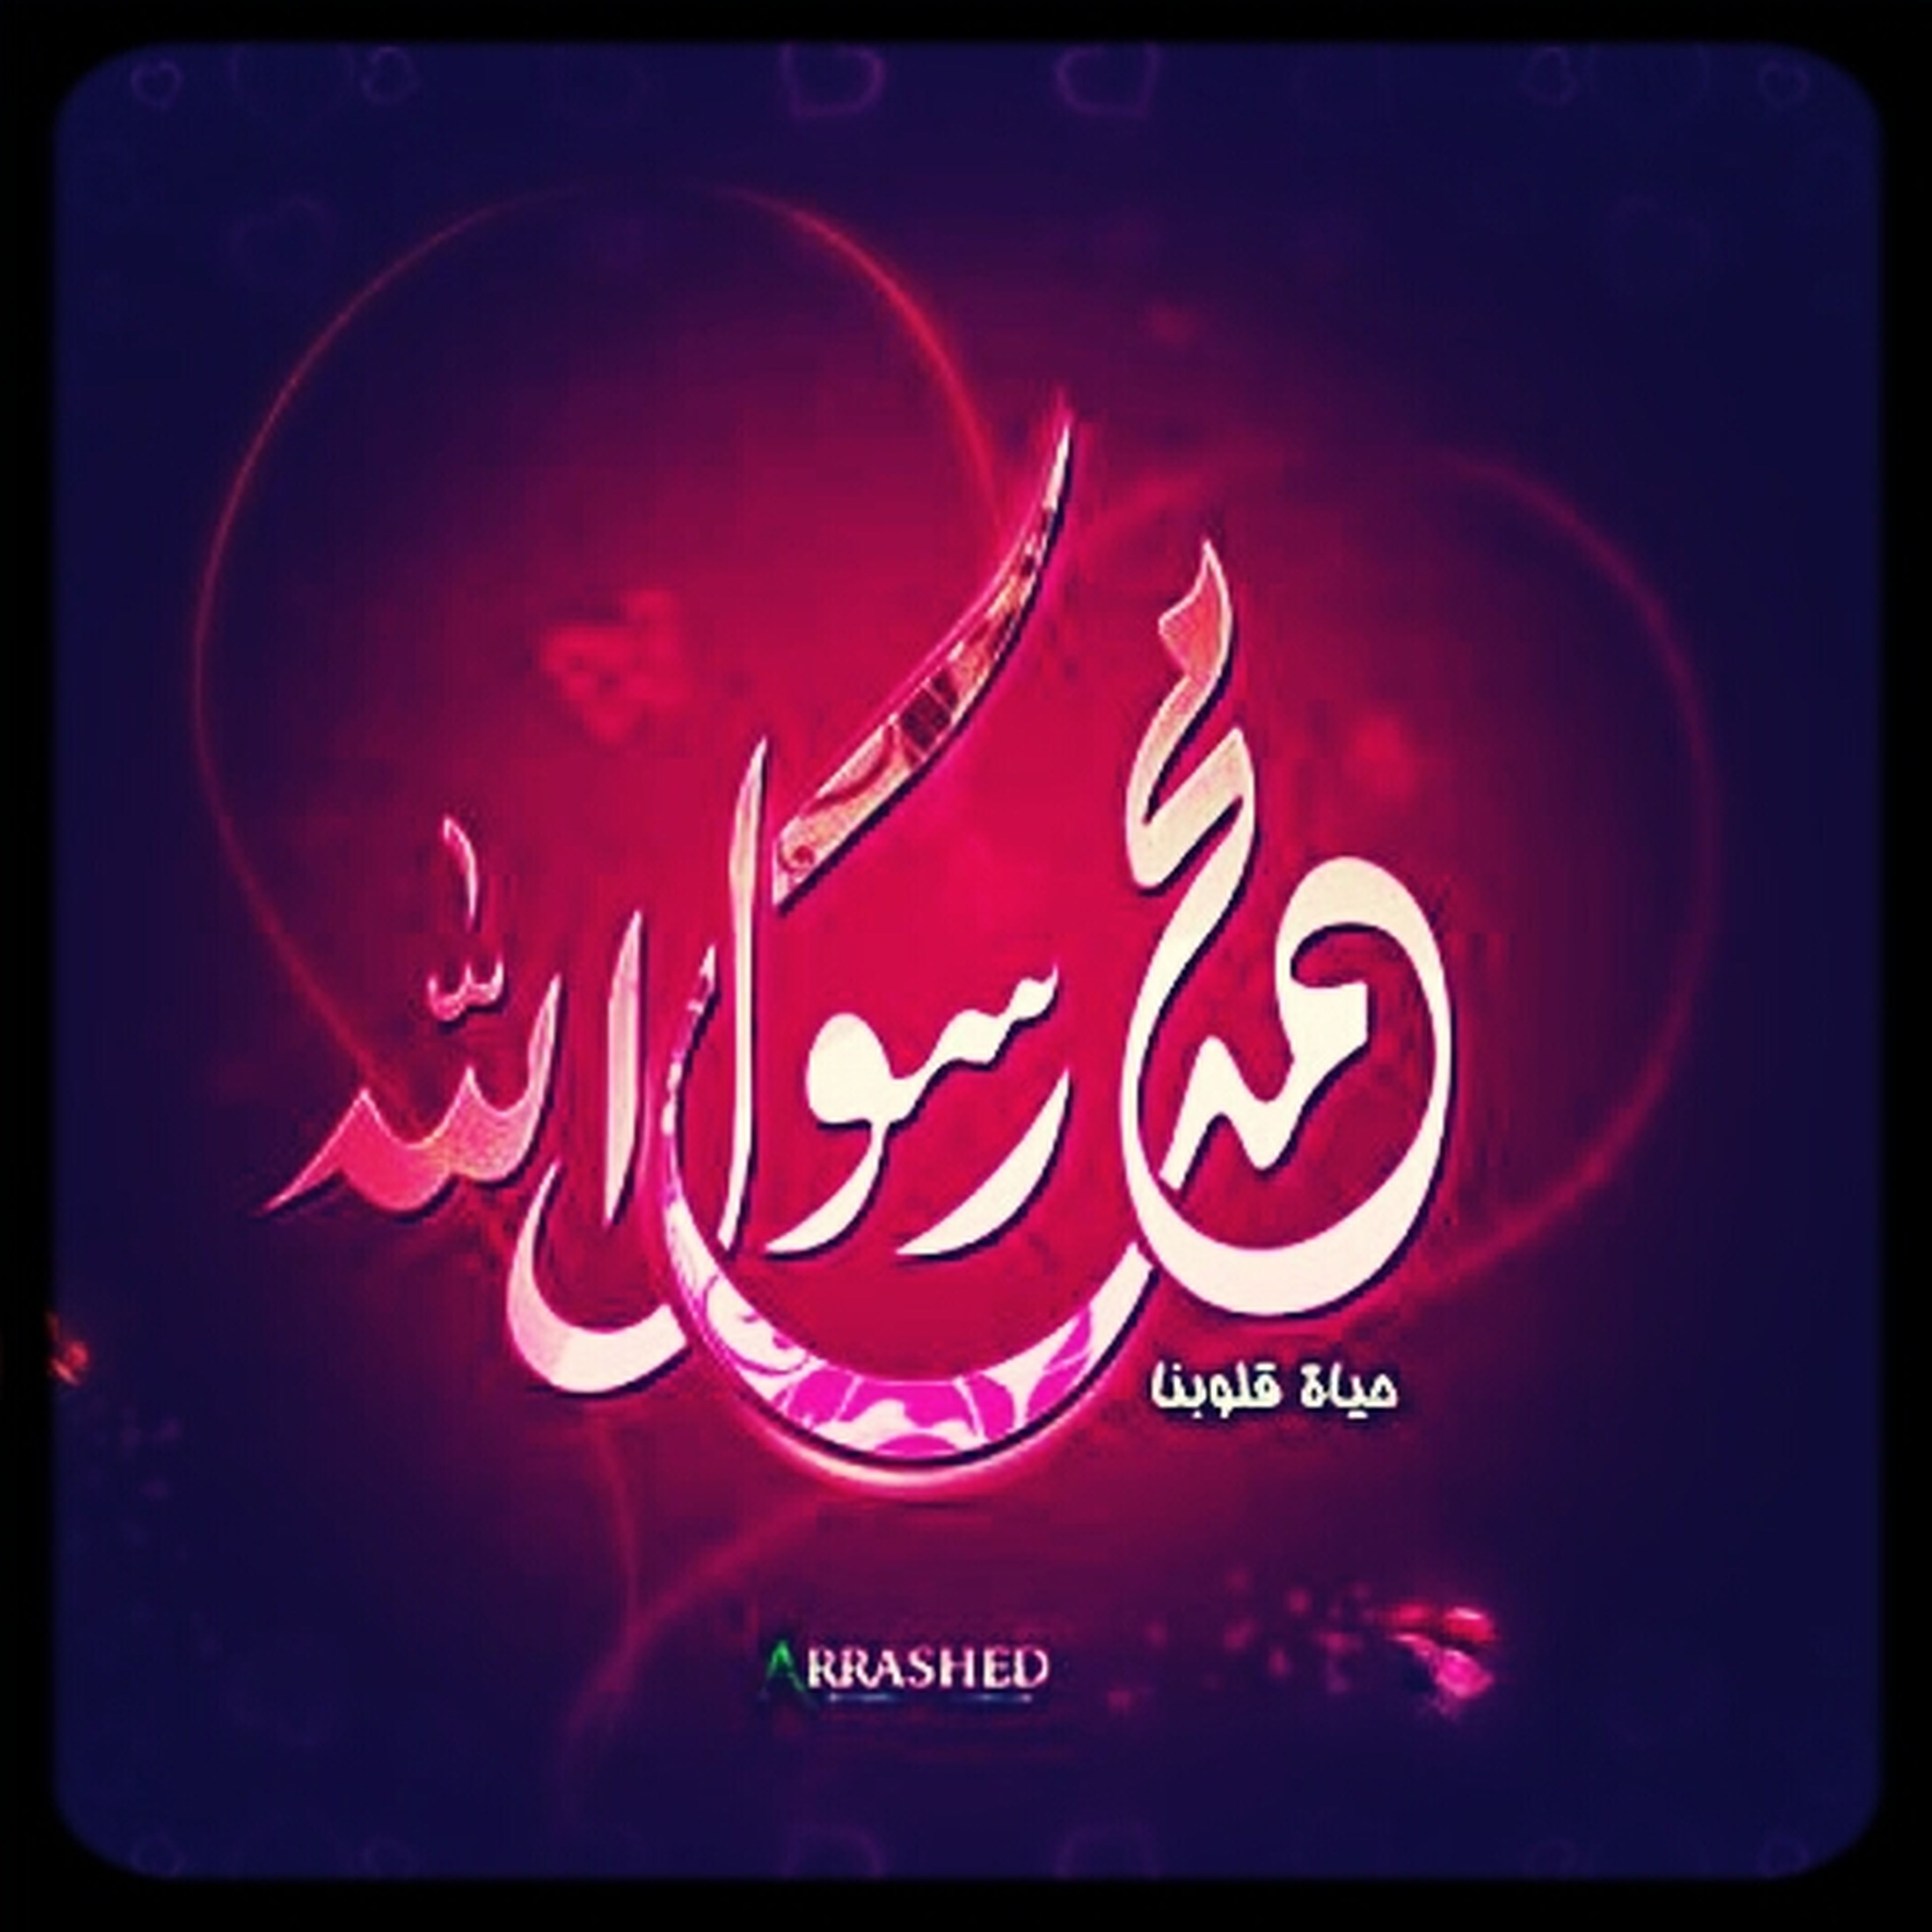 transfer print, auto post production filter, text, red, western script, communication, close-up, illuminated, indoors, night, capital letter, no people, non-western script, information, sign, low angle view, heart shape, vignette, love